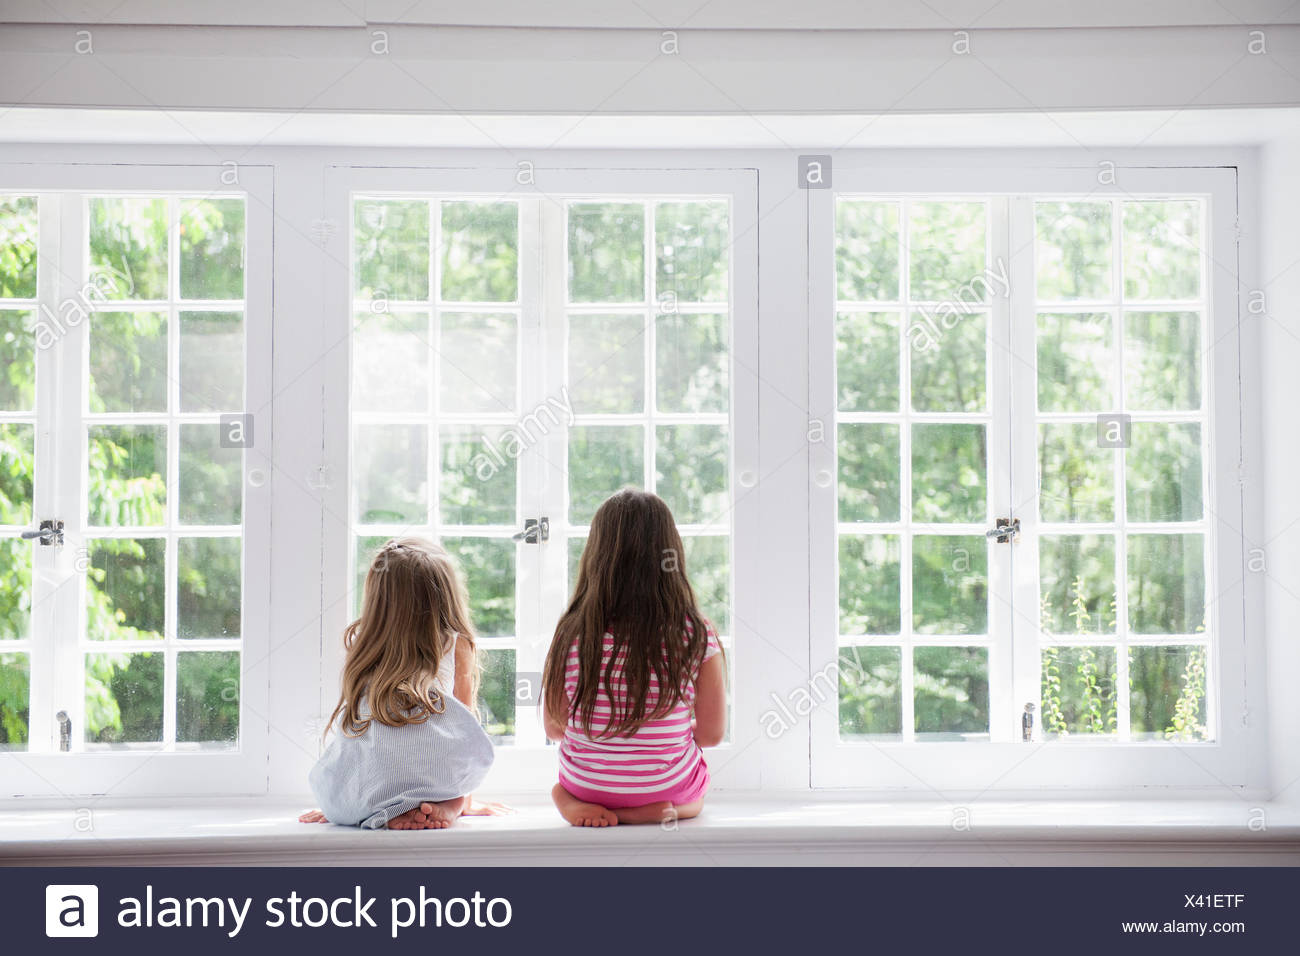 Two girls sitting side by side by a large window. - Stock Image